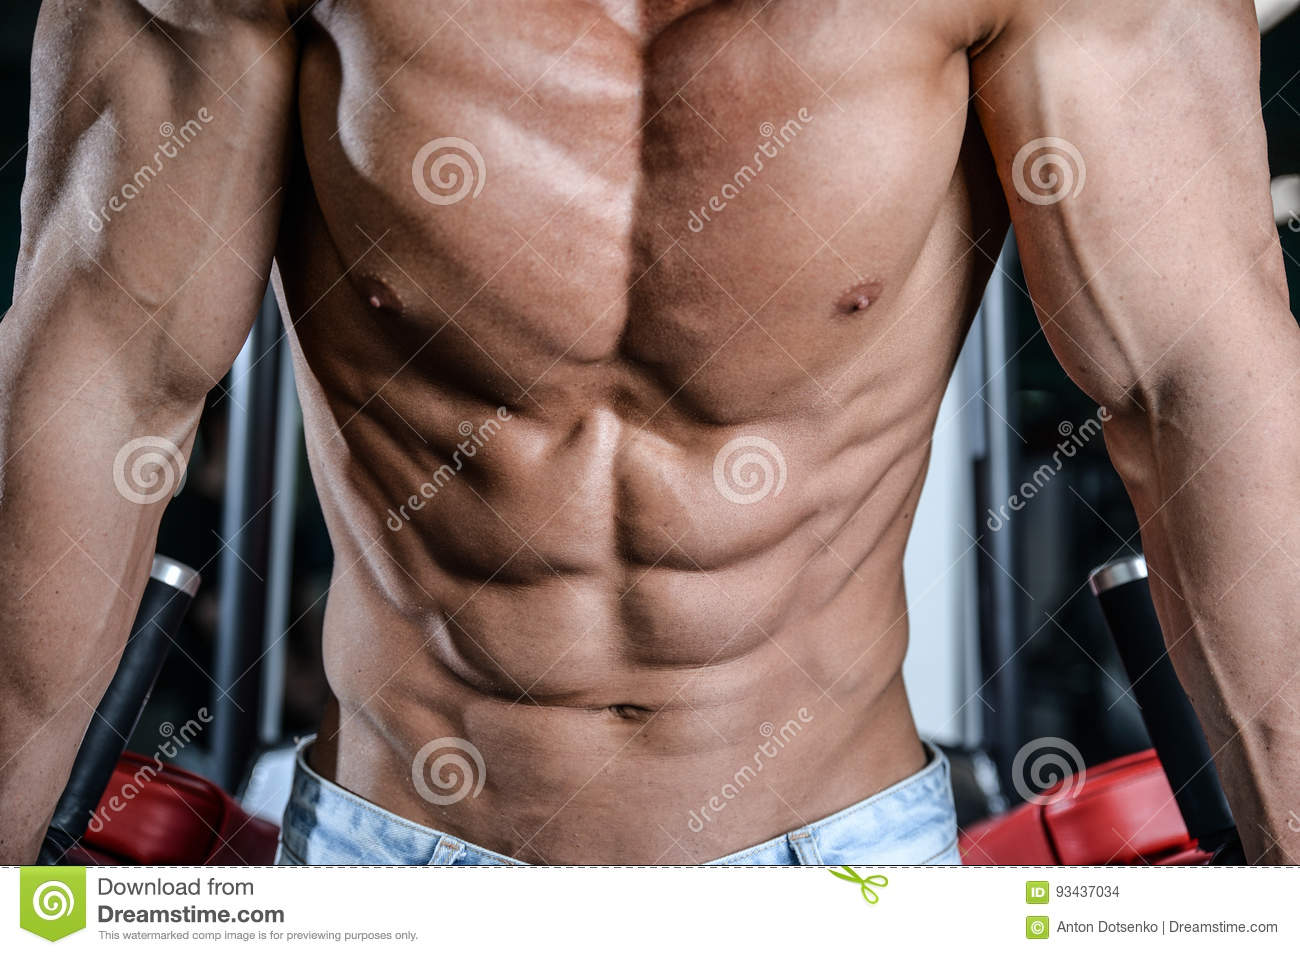 Rob Riches - Extreme lower Abs Workout! Seen it work on